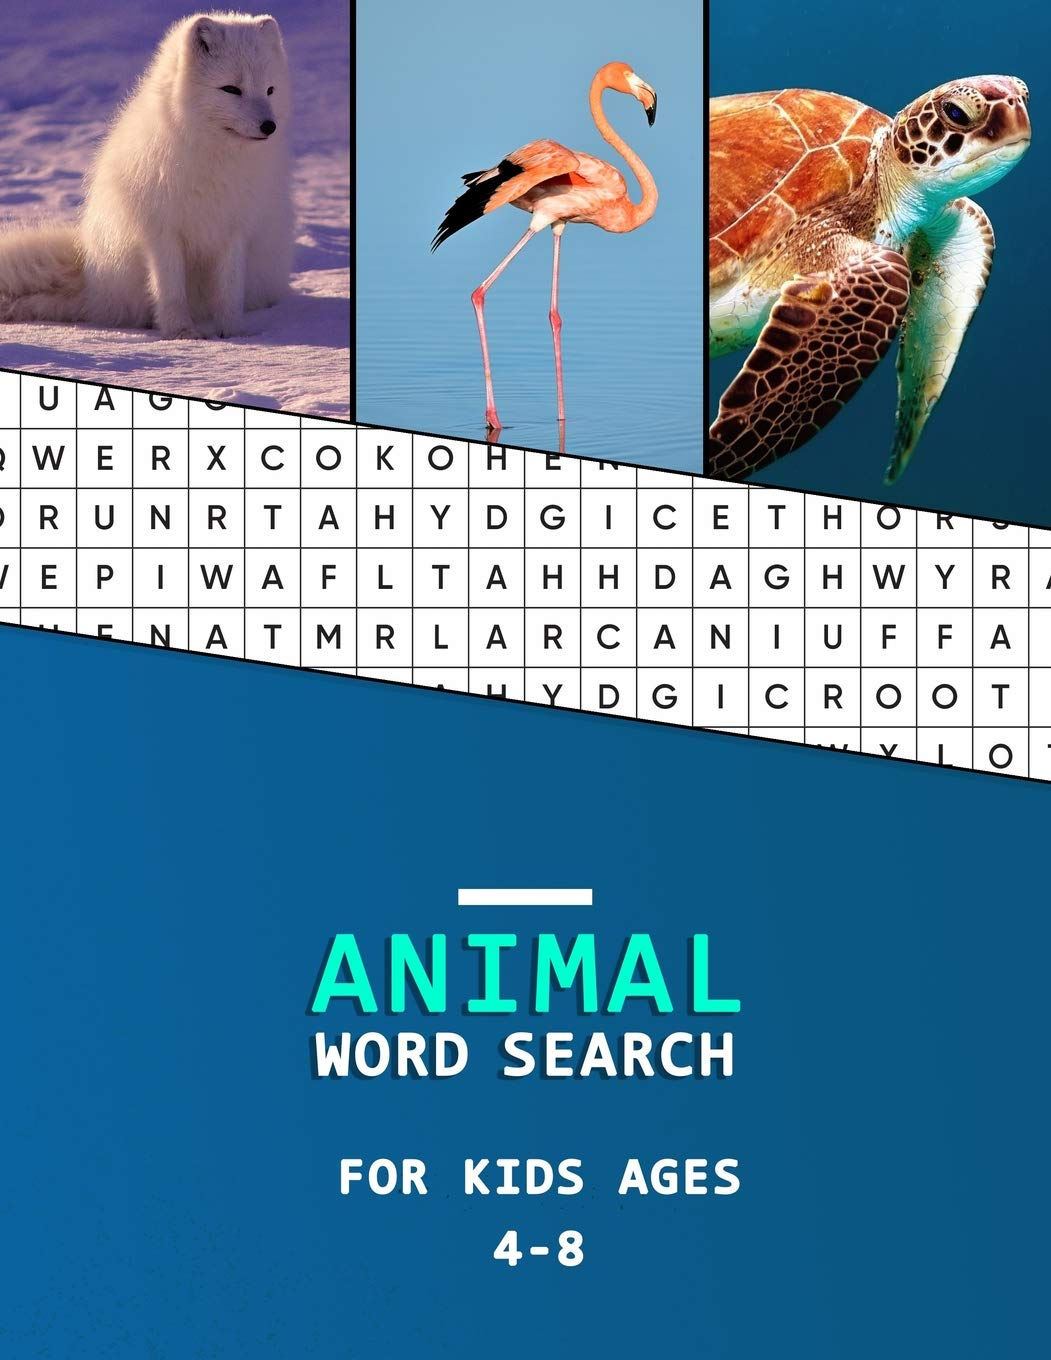 Amazon com: Animal word search for kids ages 4-8: Big word